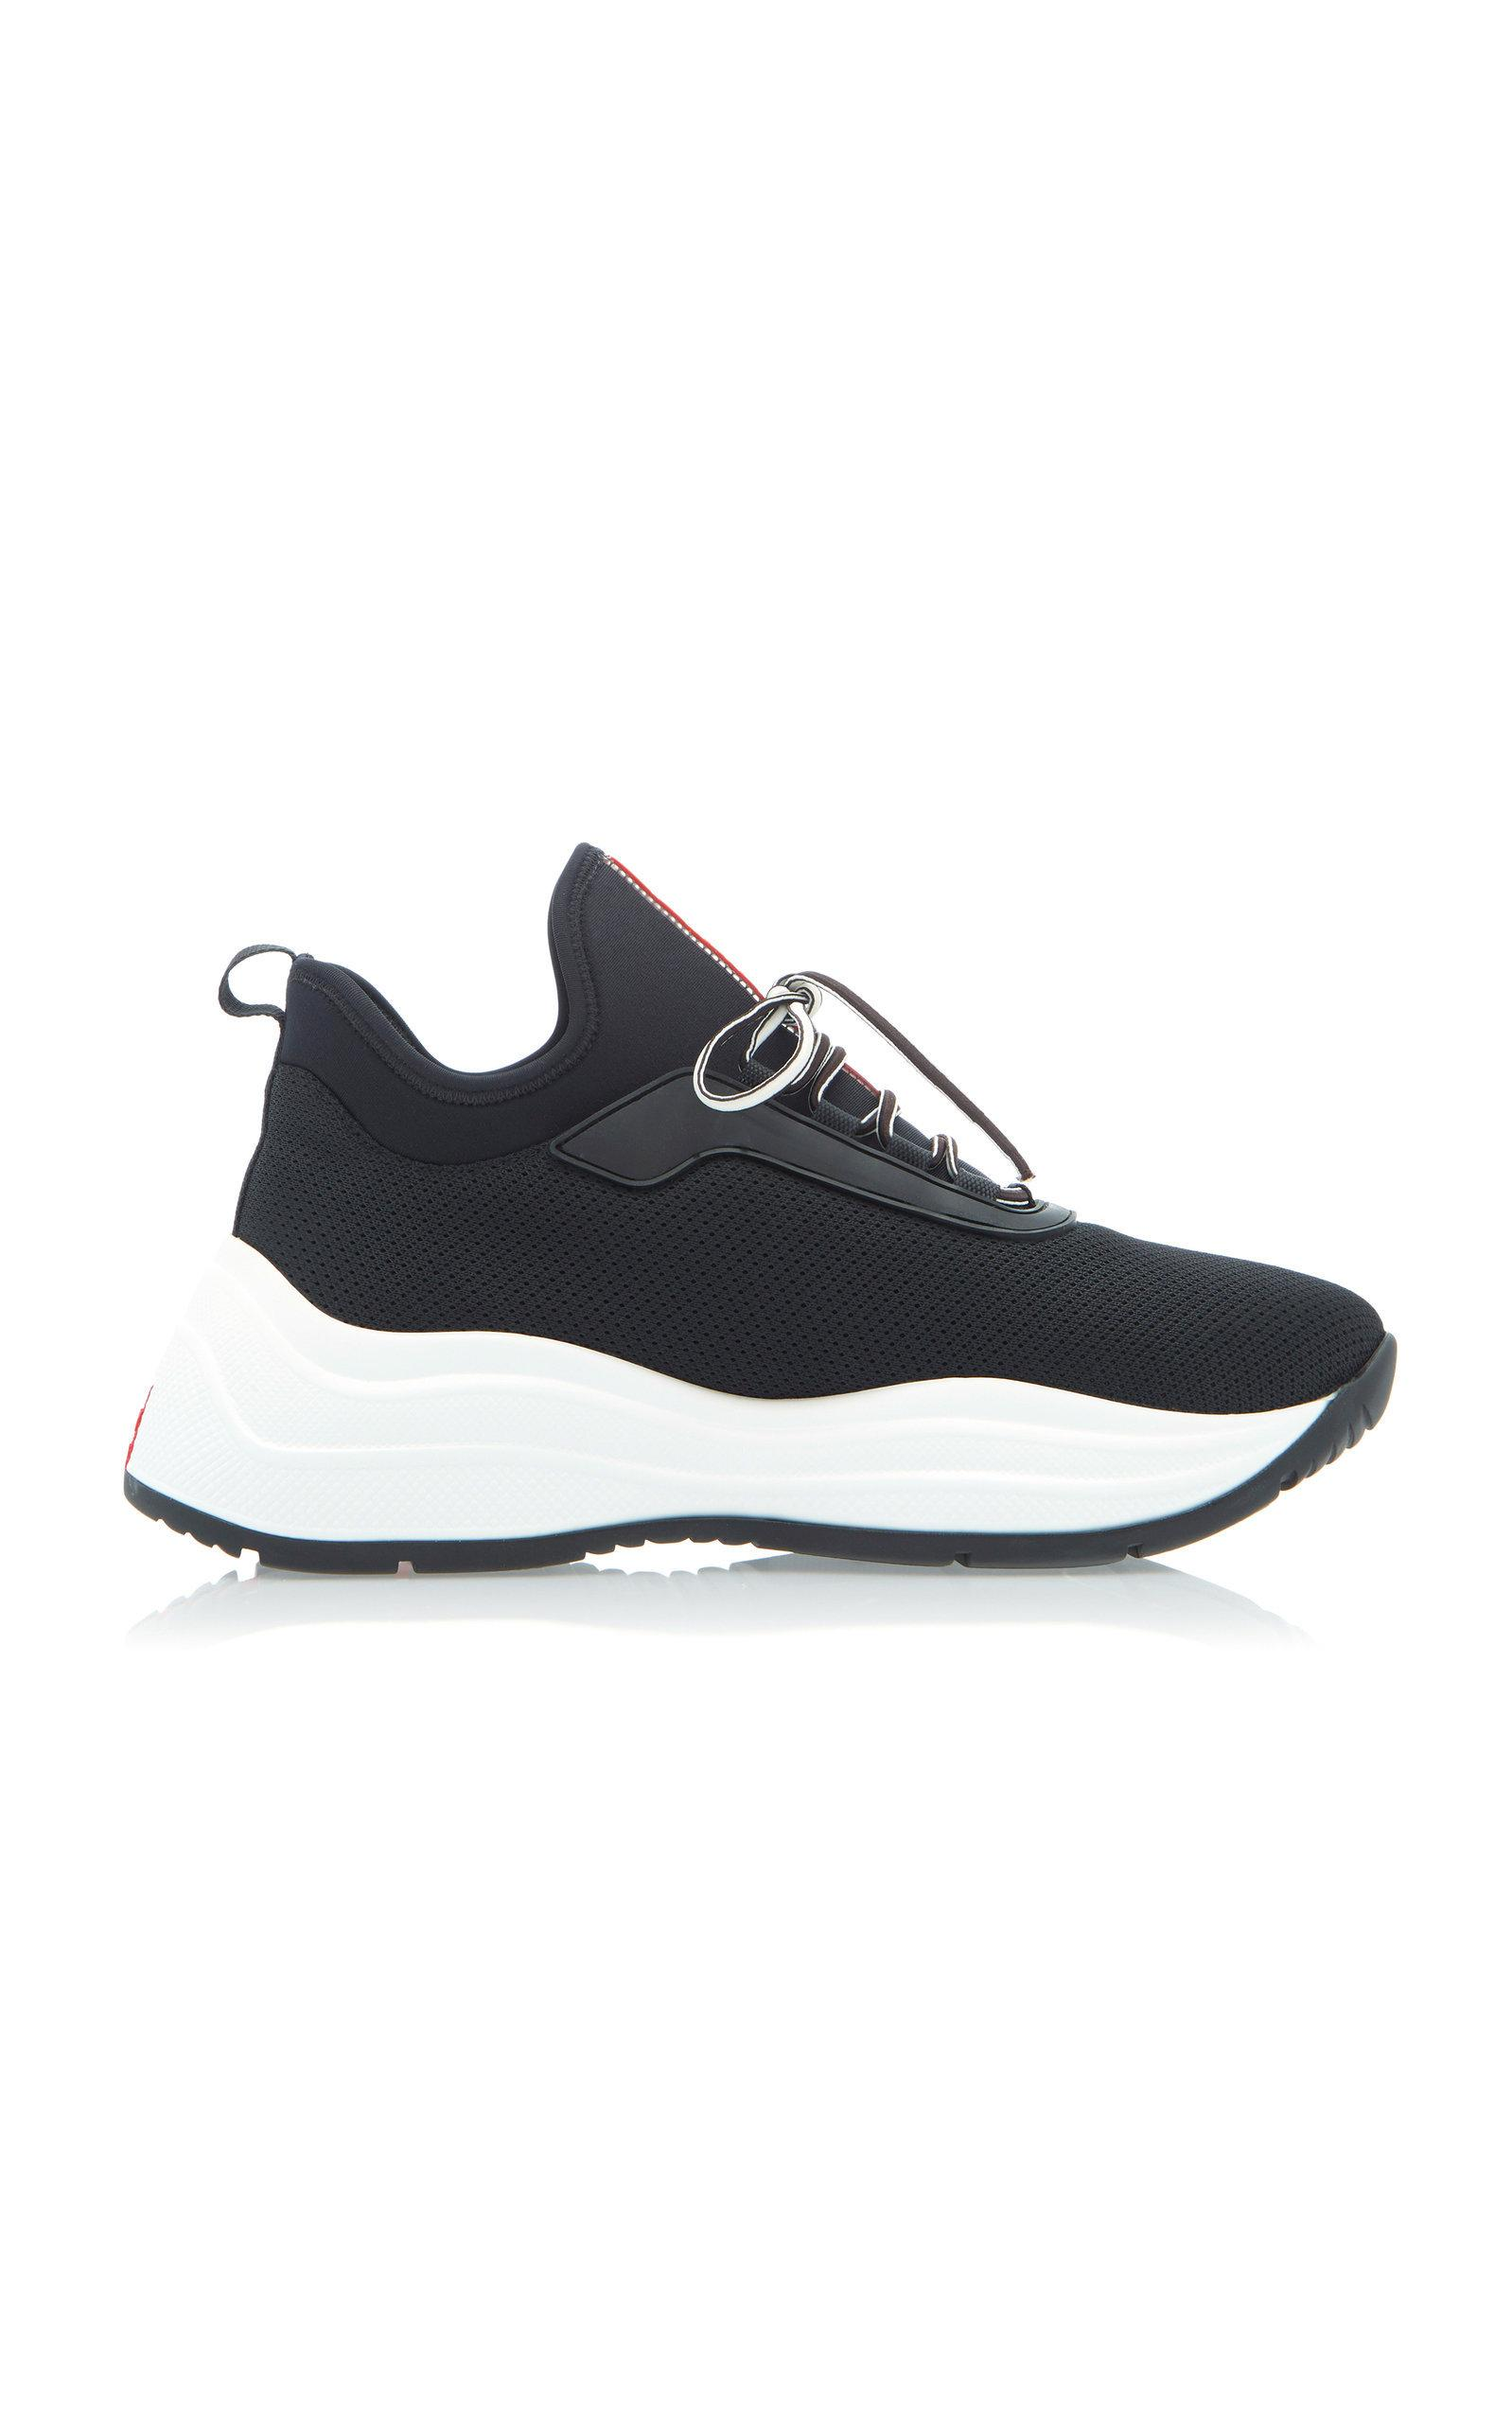 Prada America's Cup Mesh And Leather Trainers In Black